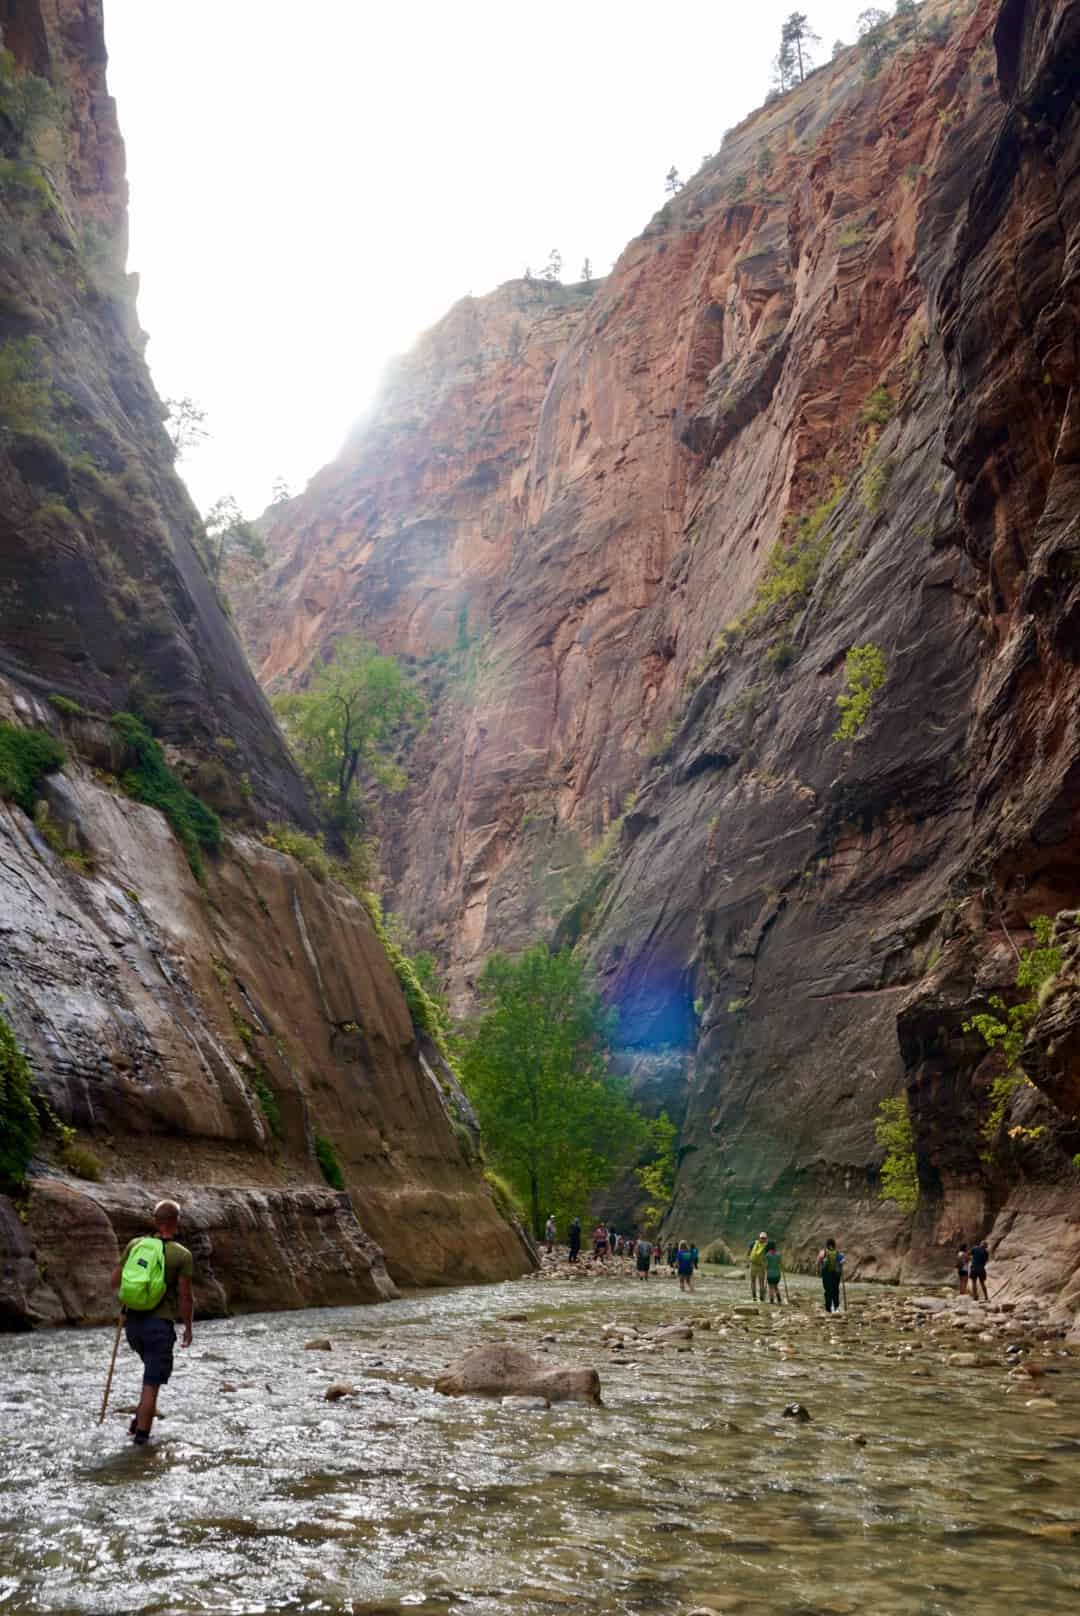 Hiking the Narrows is still a great option for visiting Zion during COVID, but you need to plan ahead